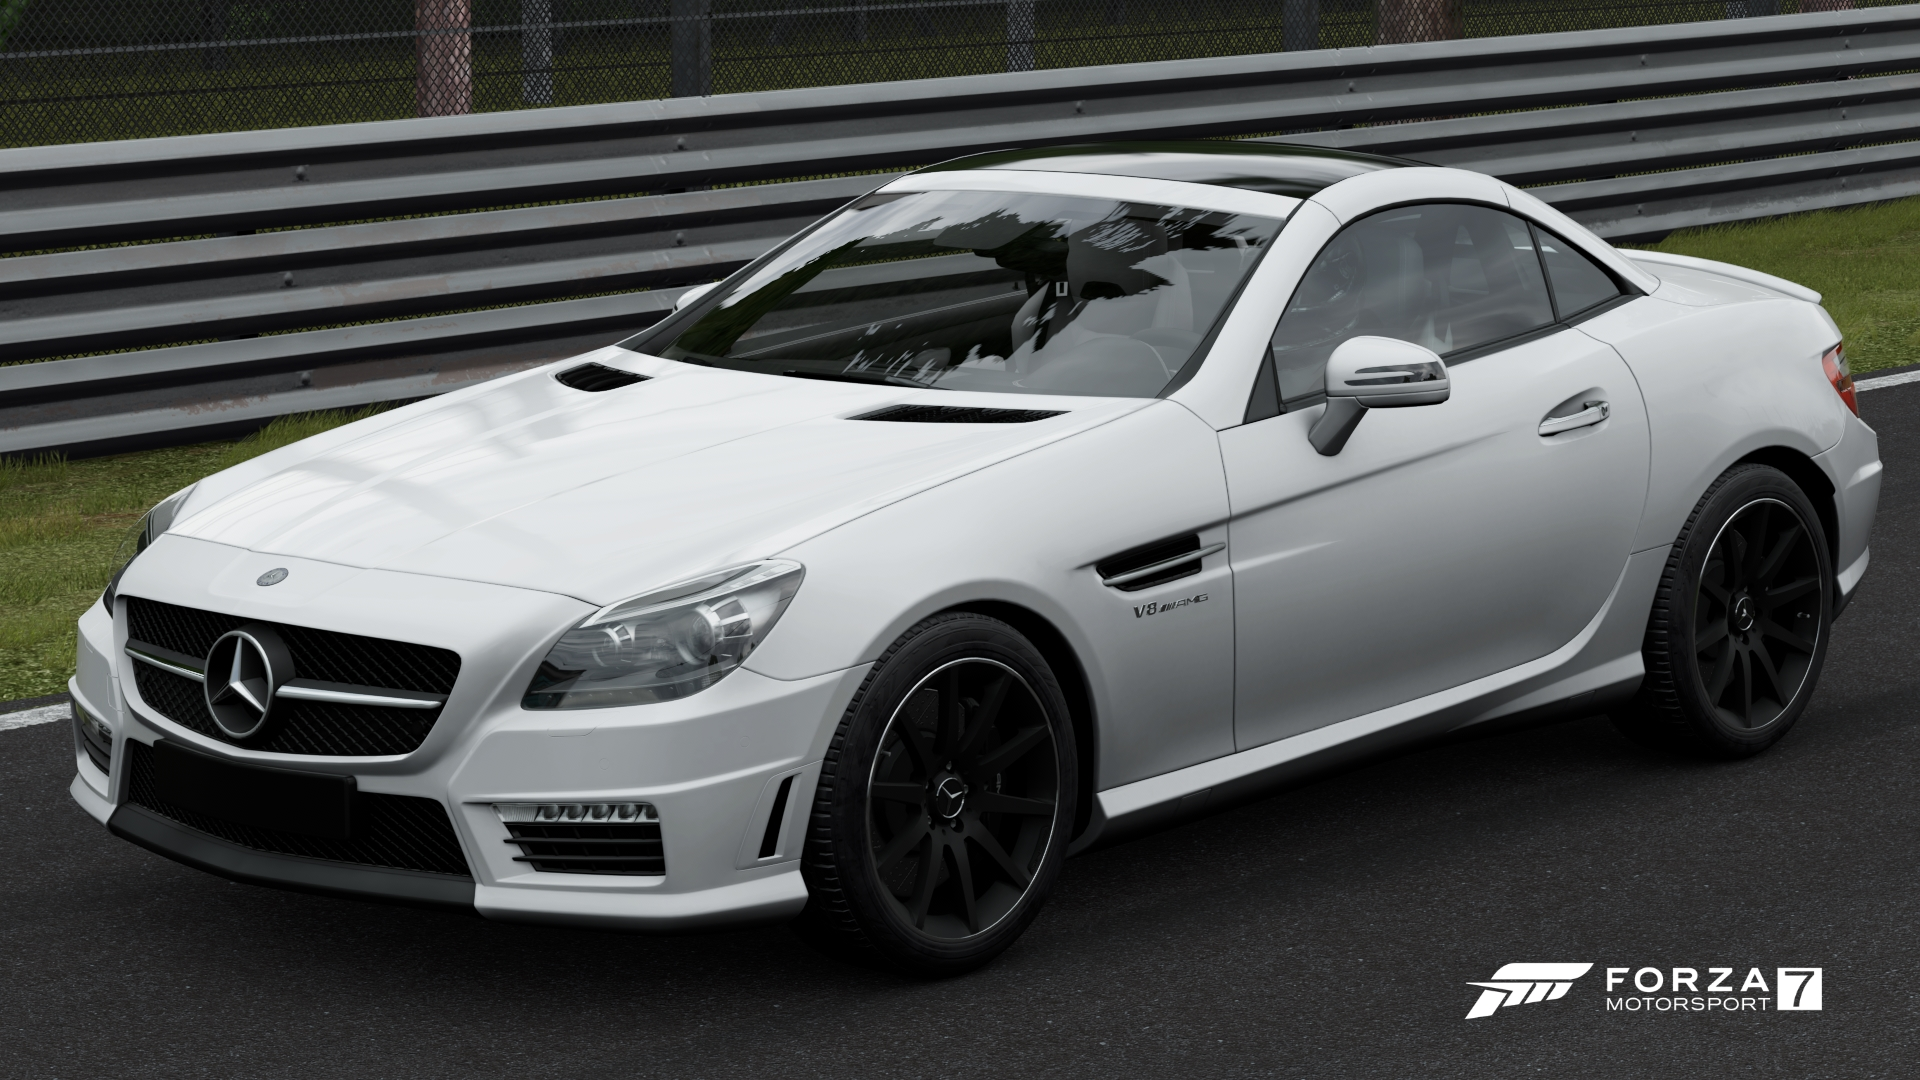 Mercedes benz slk 55 amg forza motorsport wiki fandom for Mercedes benz motorsport